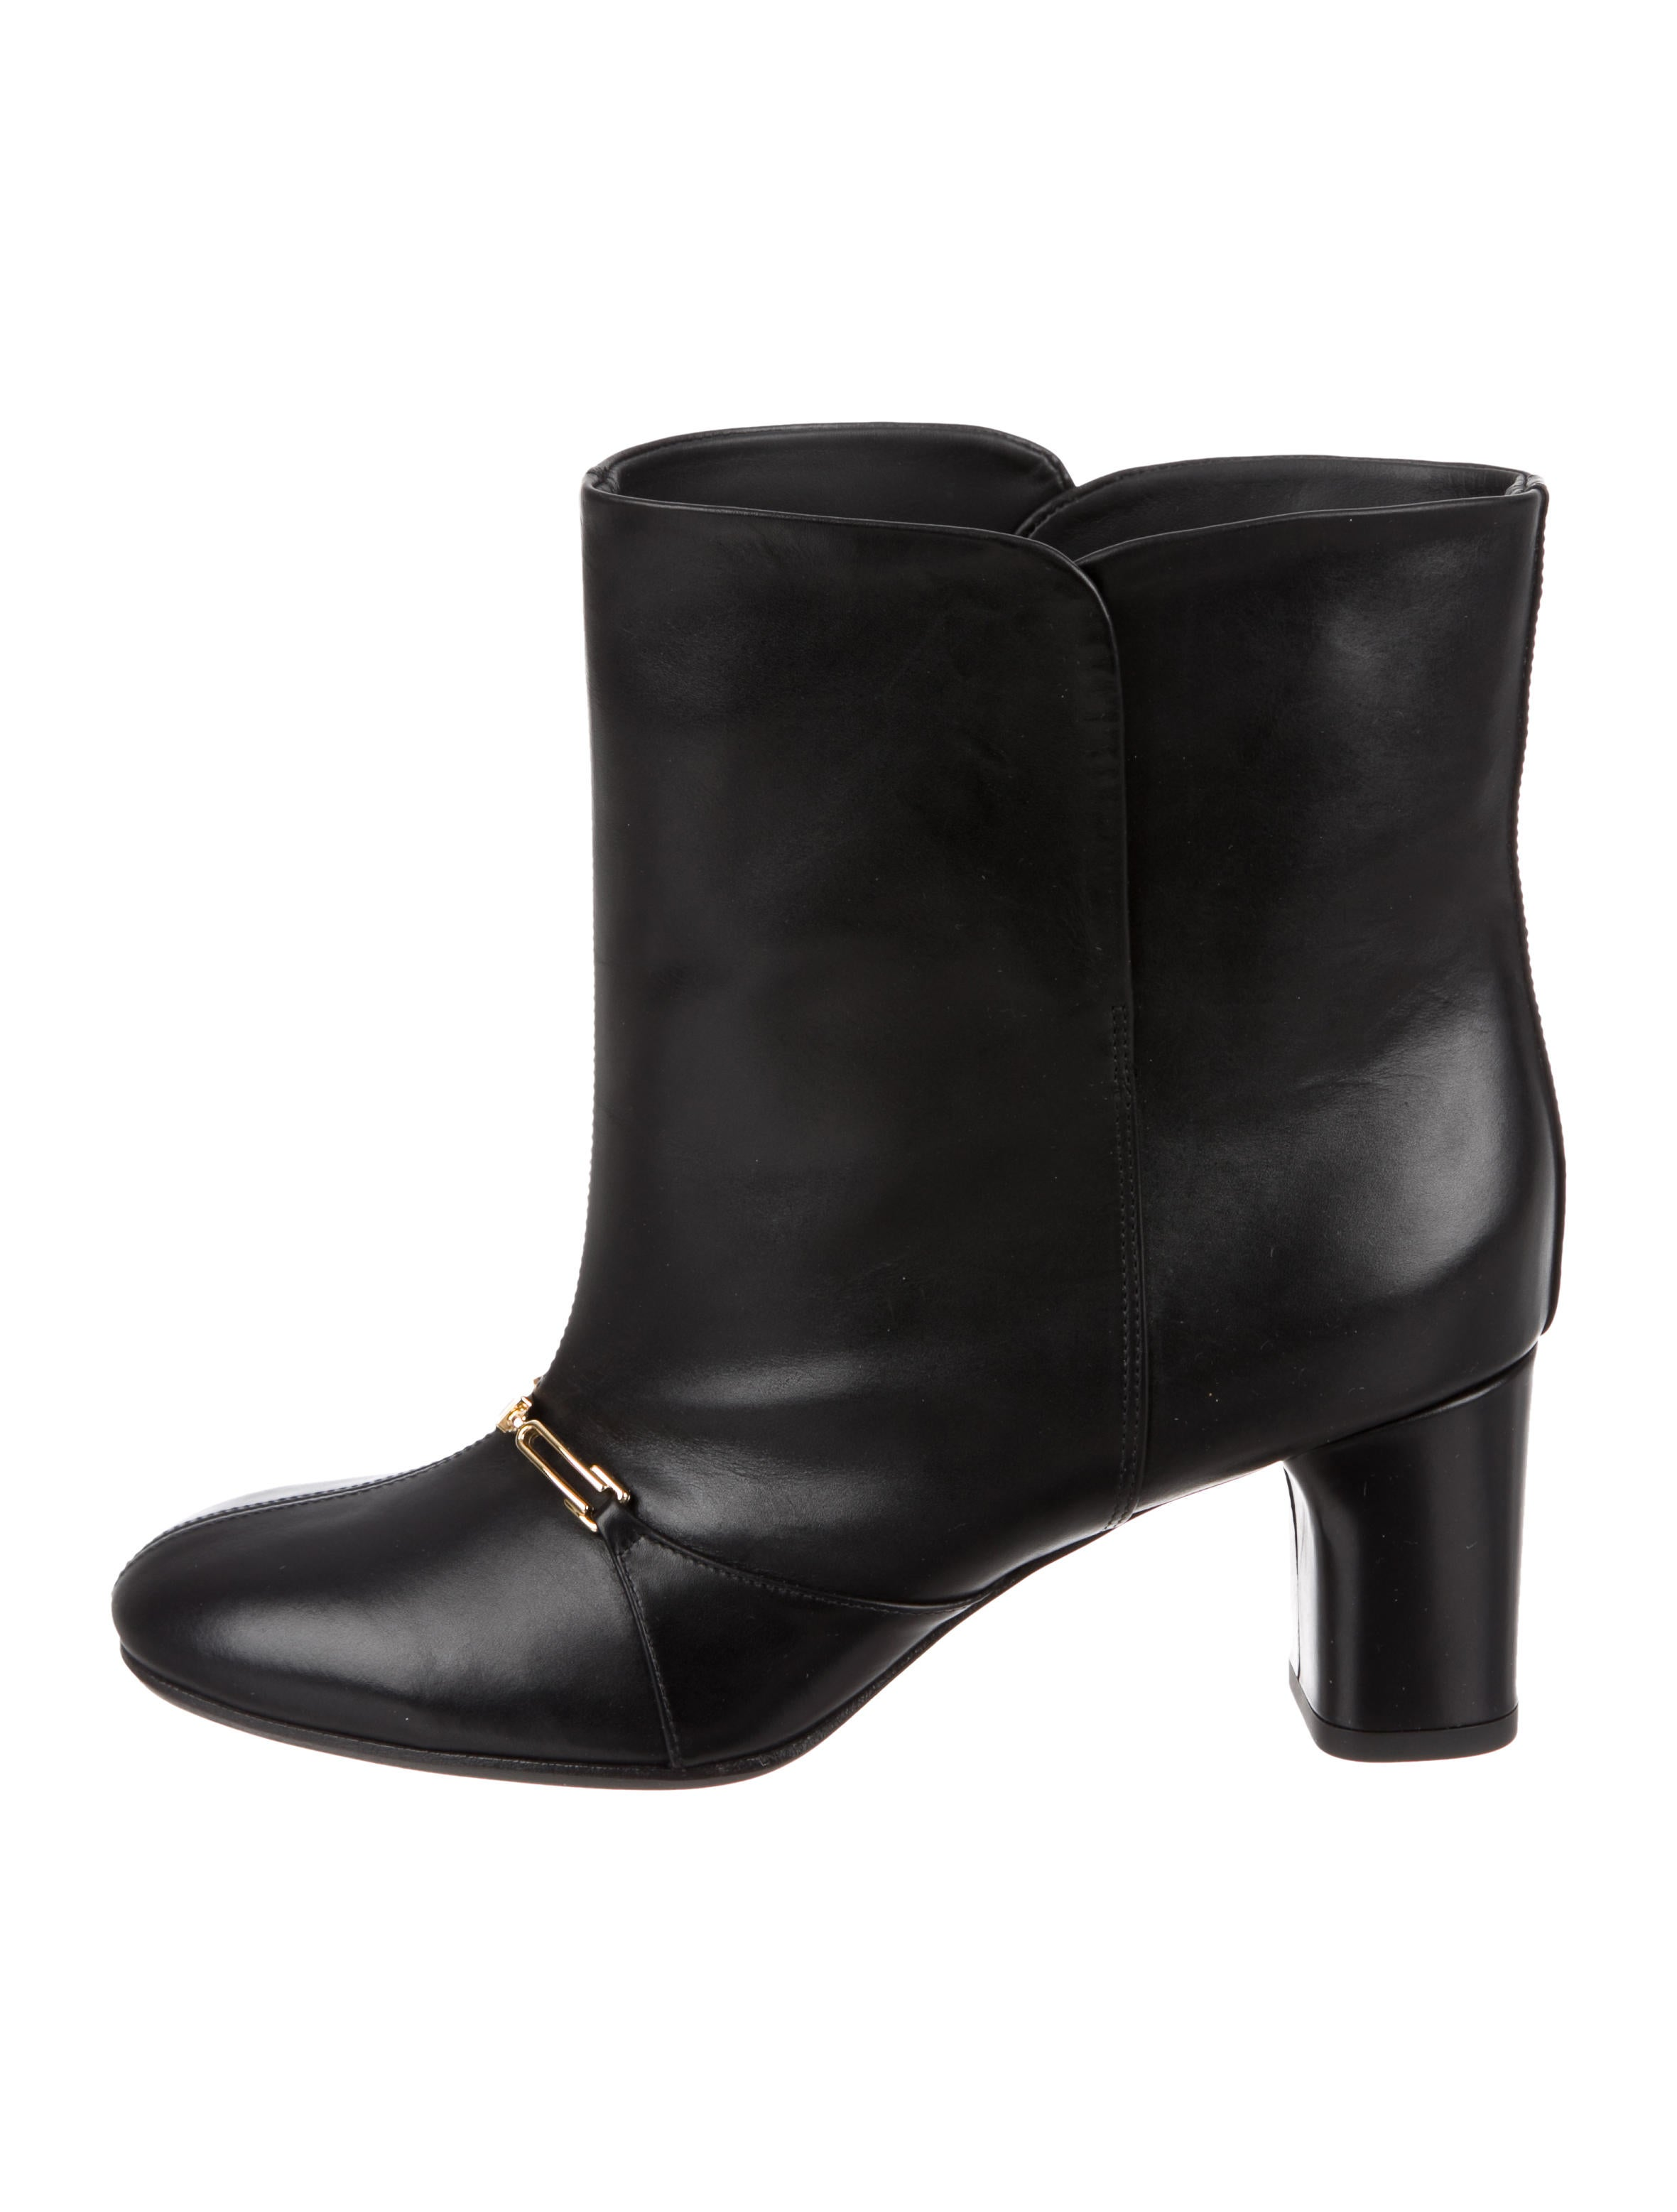 Céline Leather Chain-Link Ankle Boots w/ Tags